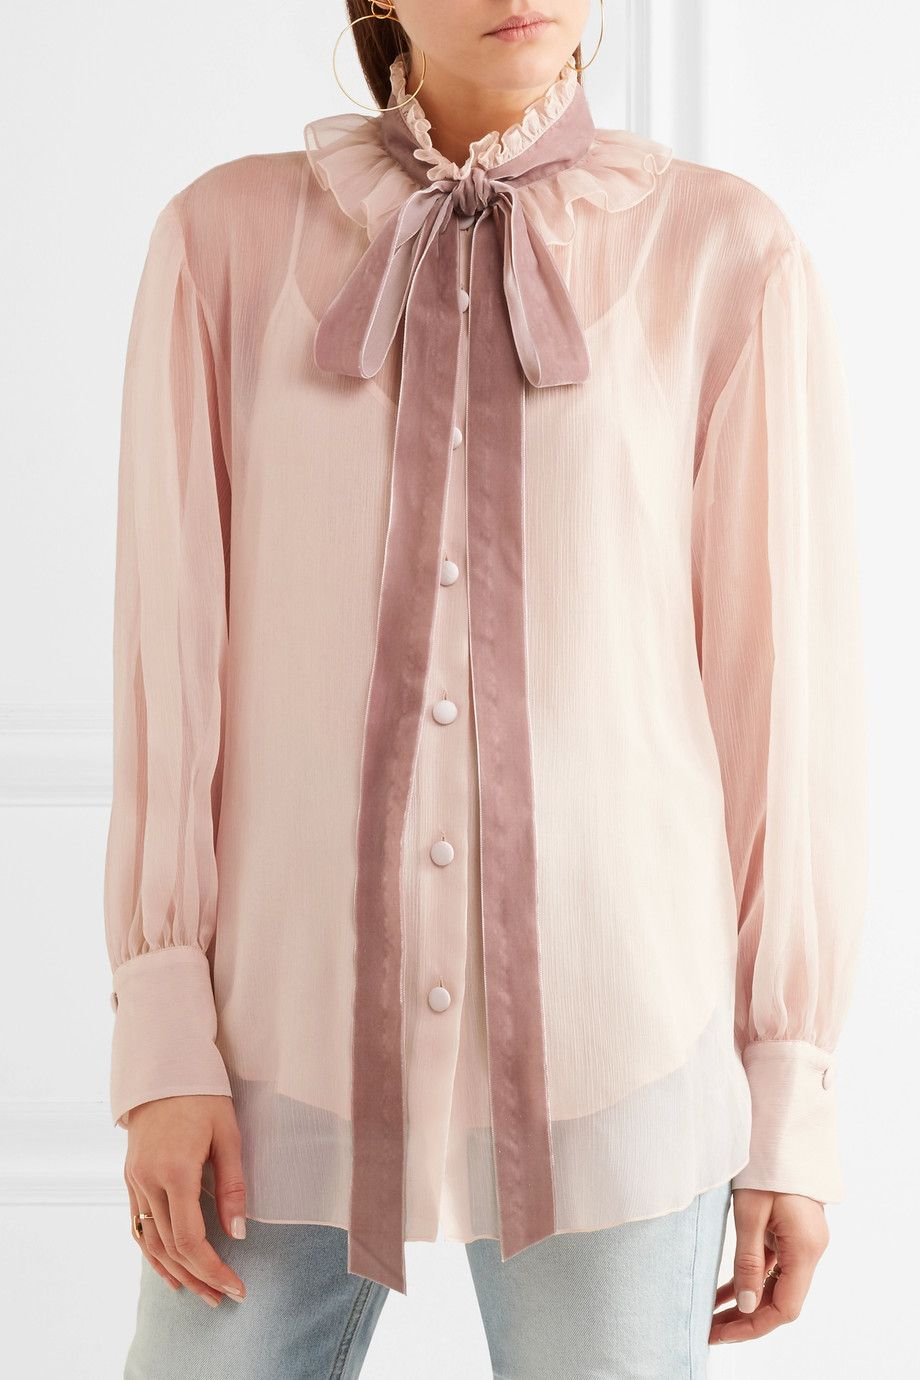 Ruffled Pussy-bow Chiffon Blouse - Marigold See By Chlo 2018 New Cheap Price All Seasons Available Cheap 2018 Newest Free Shipping Discounts Quality Free Shipping r2rrgj